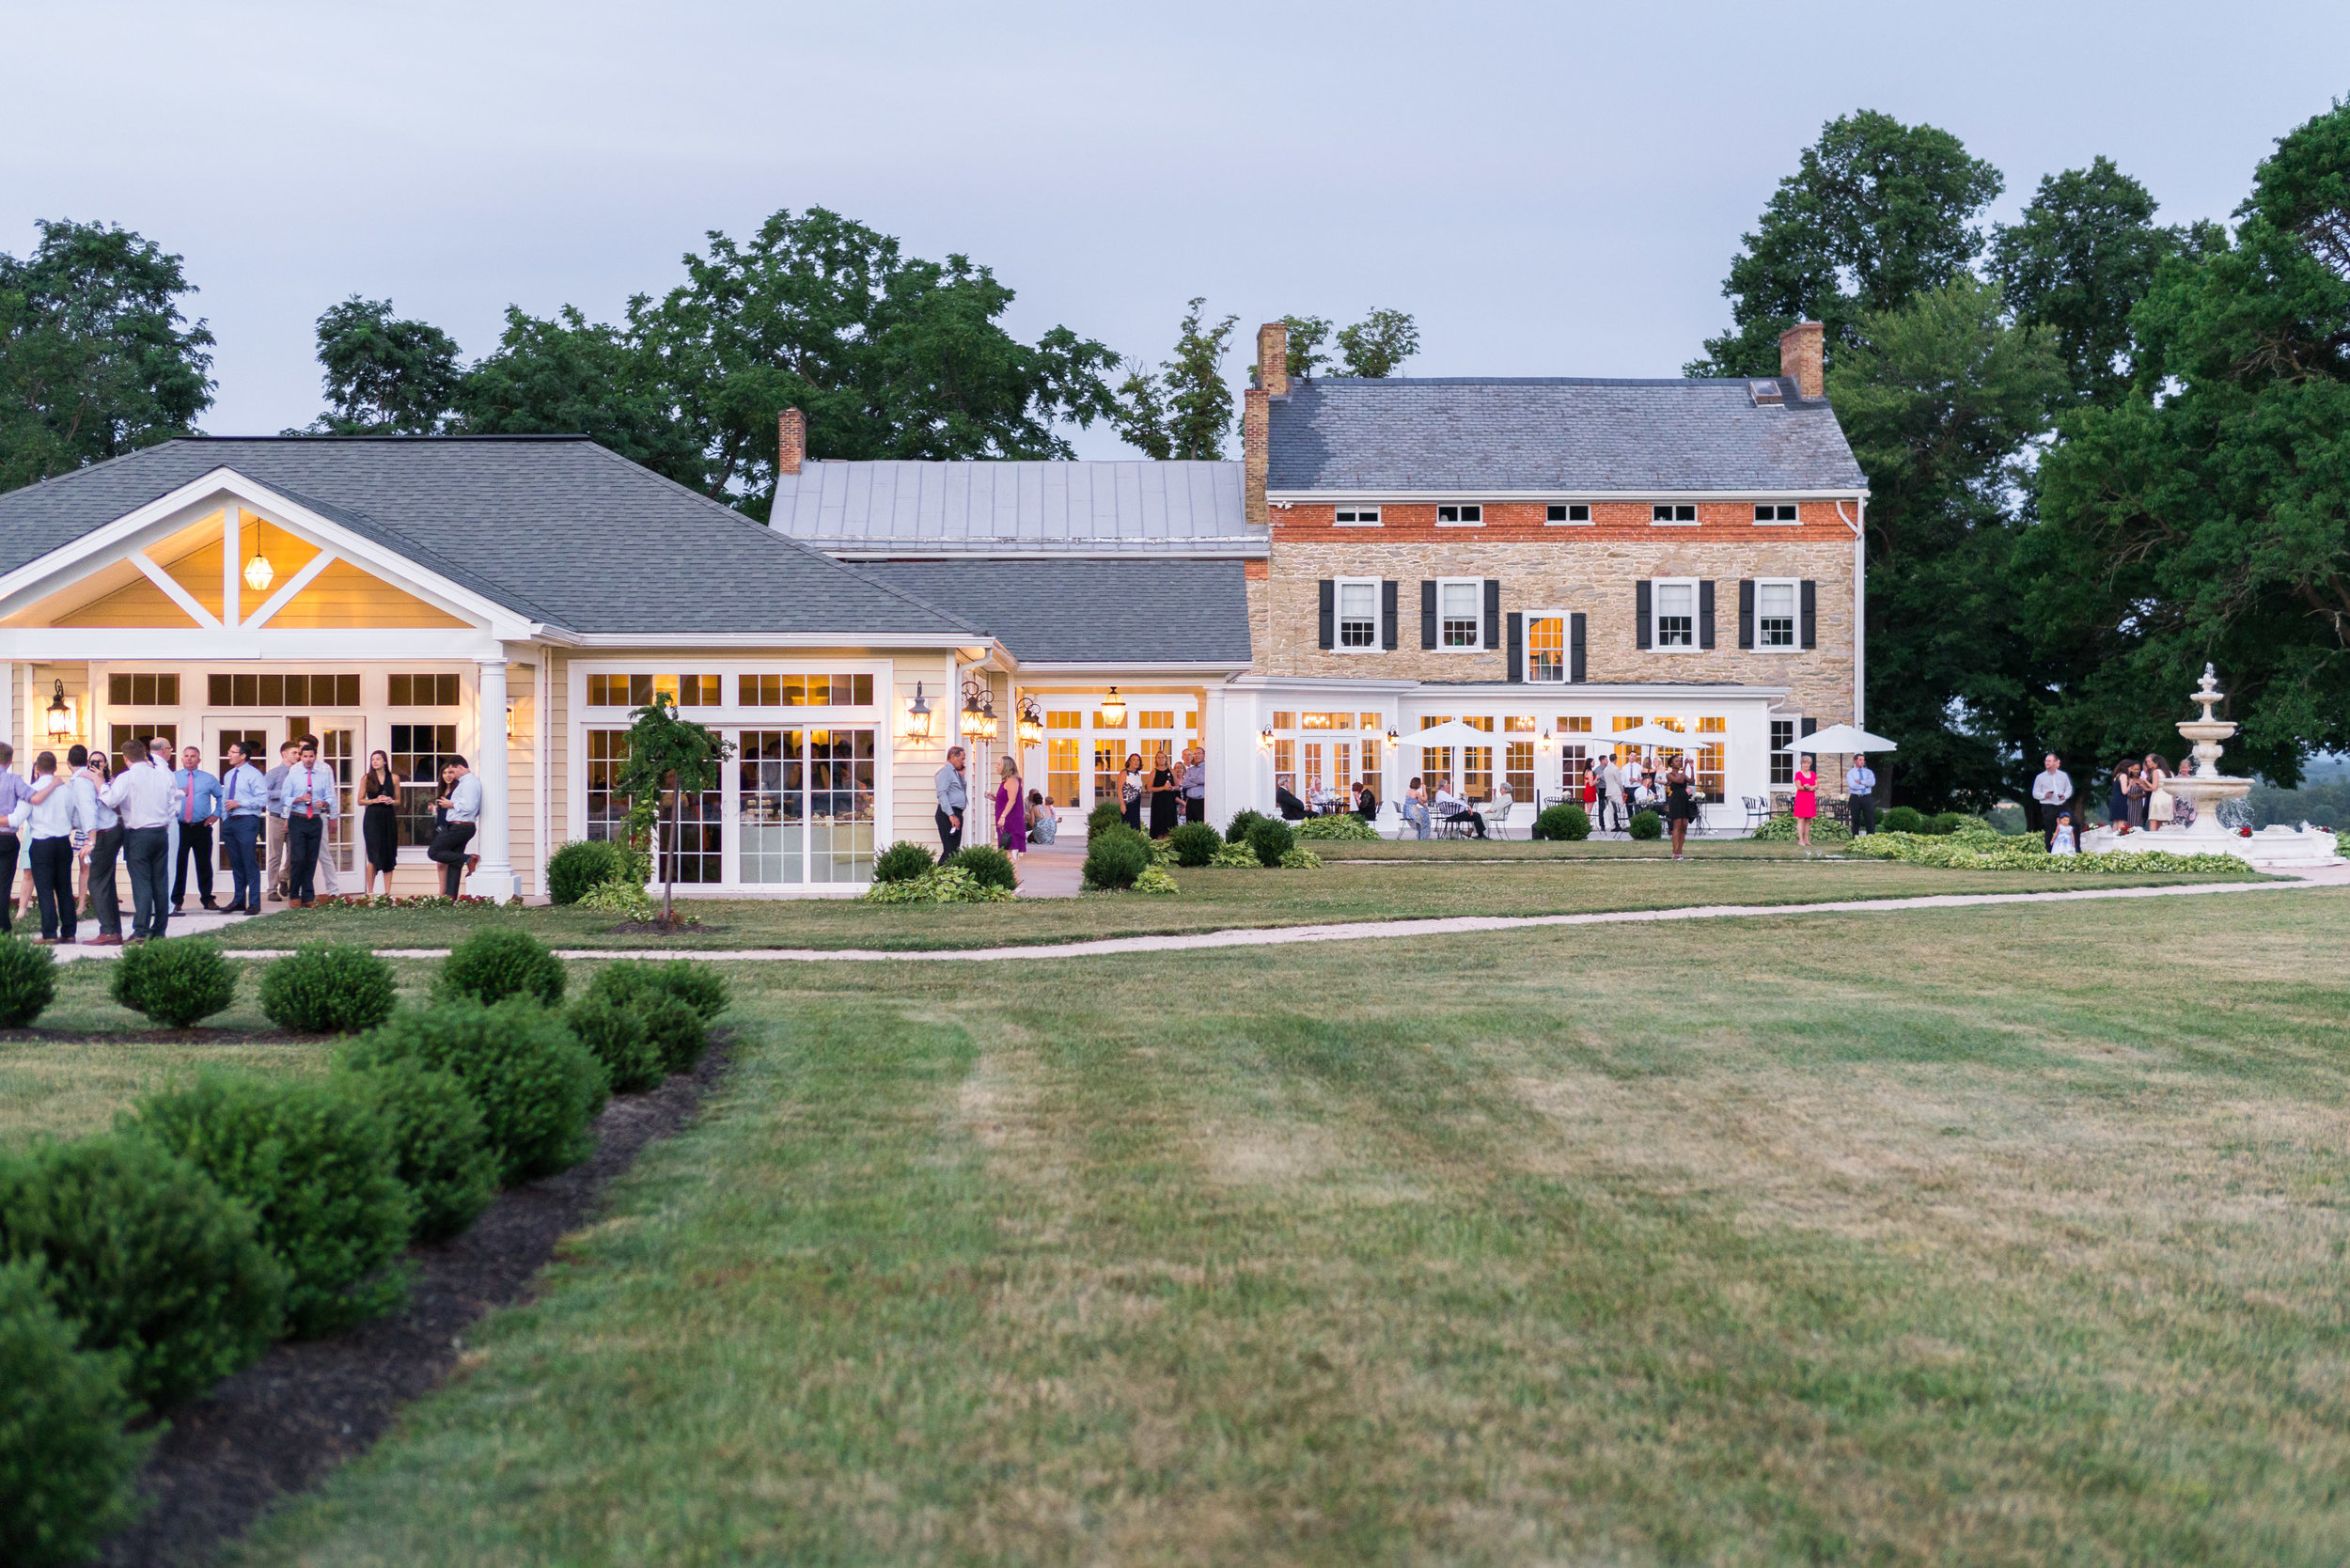 Sunset reception photos at Springfield Manor Winery and Distillery